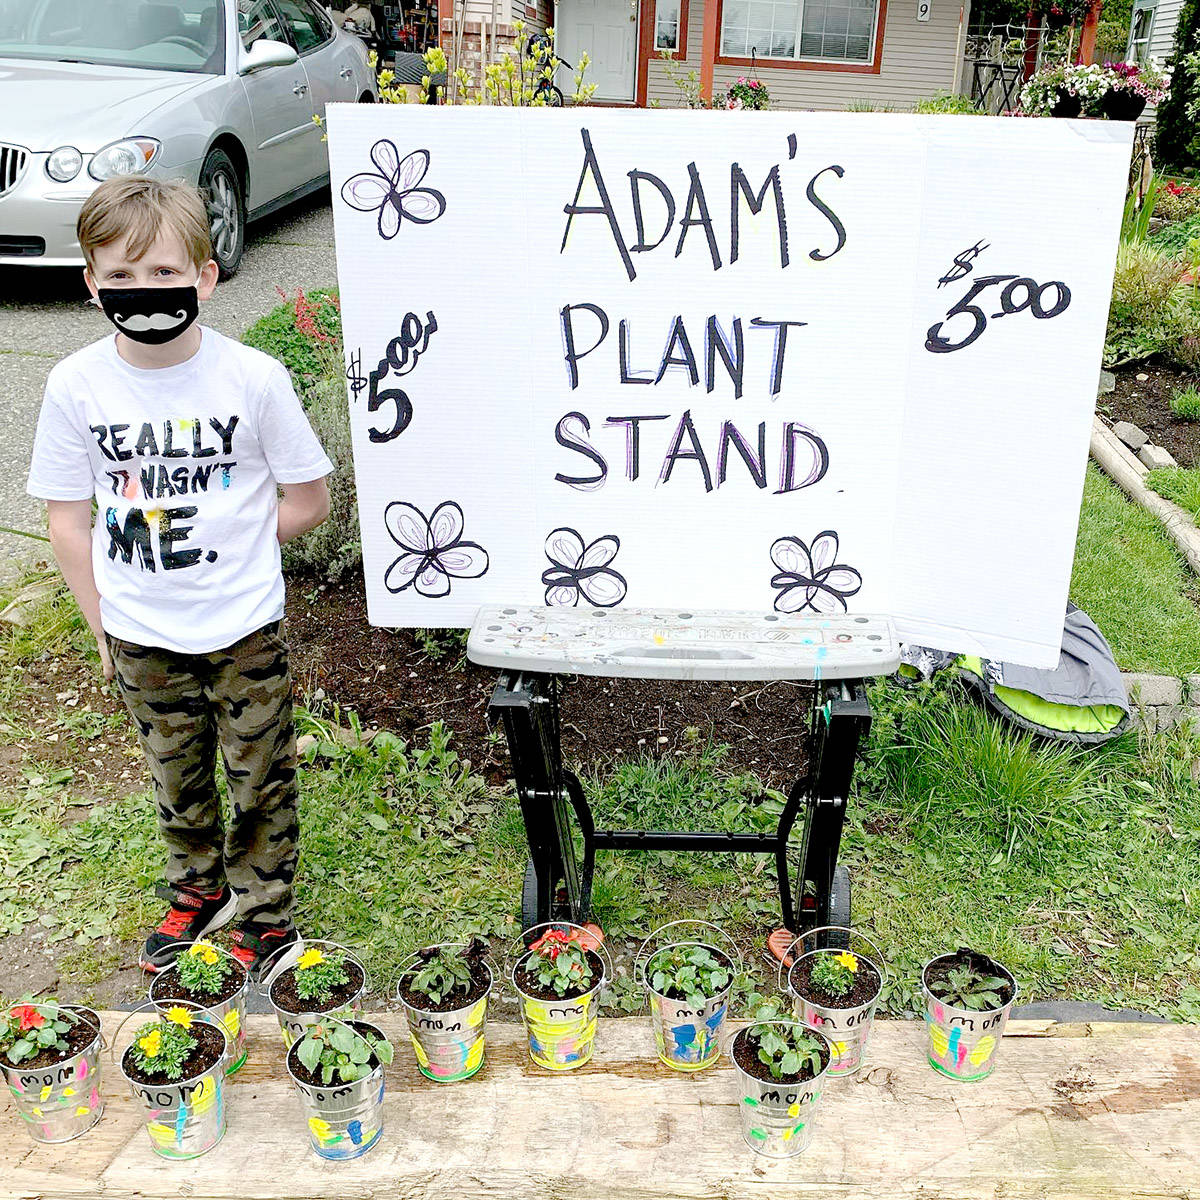 Seven-year-old Adam Dadson opened his own plant stand at 24th Ave and 268 Street in Aldergrove. (Val Dadson/Special to The Star)